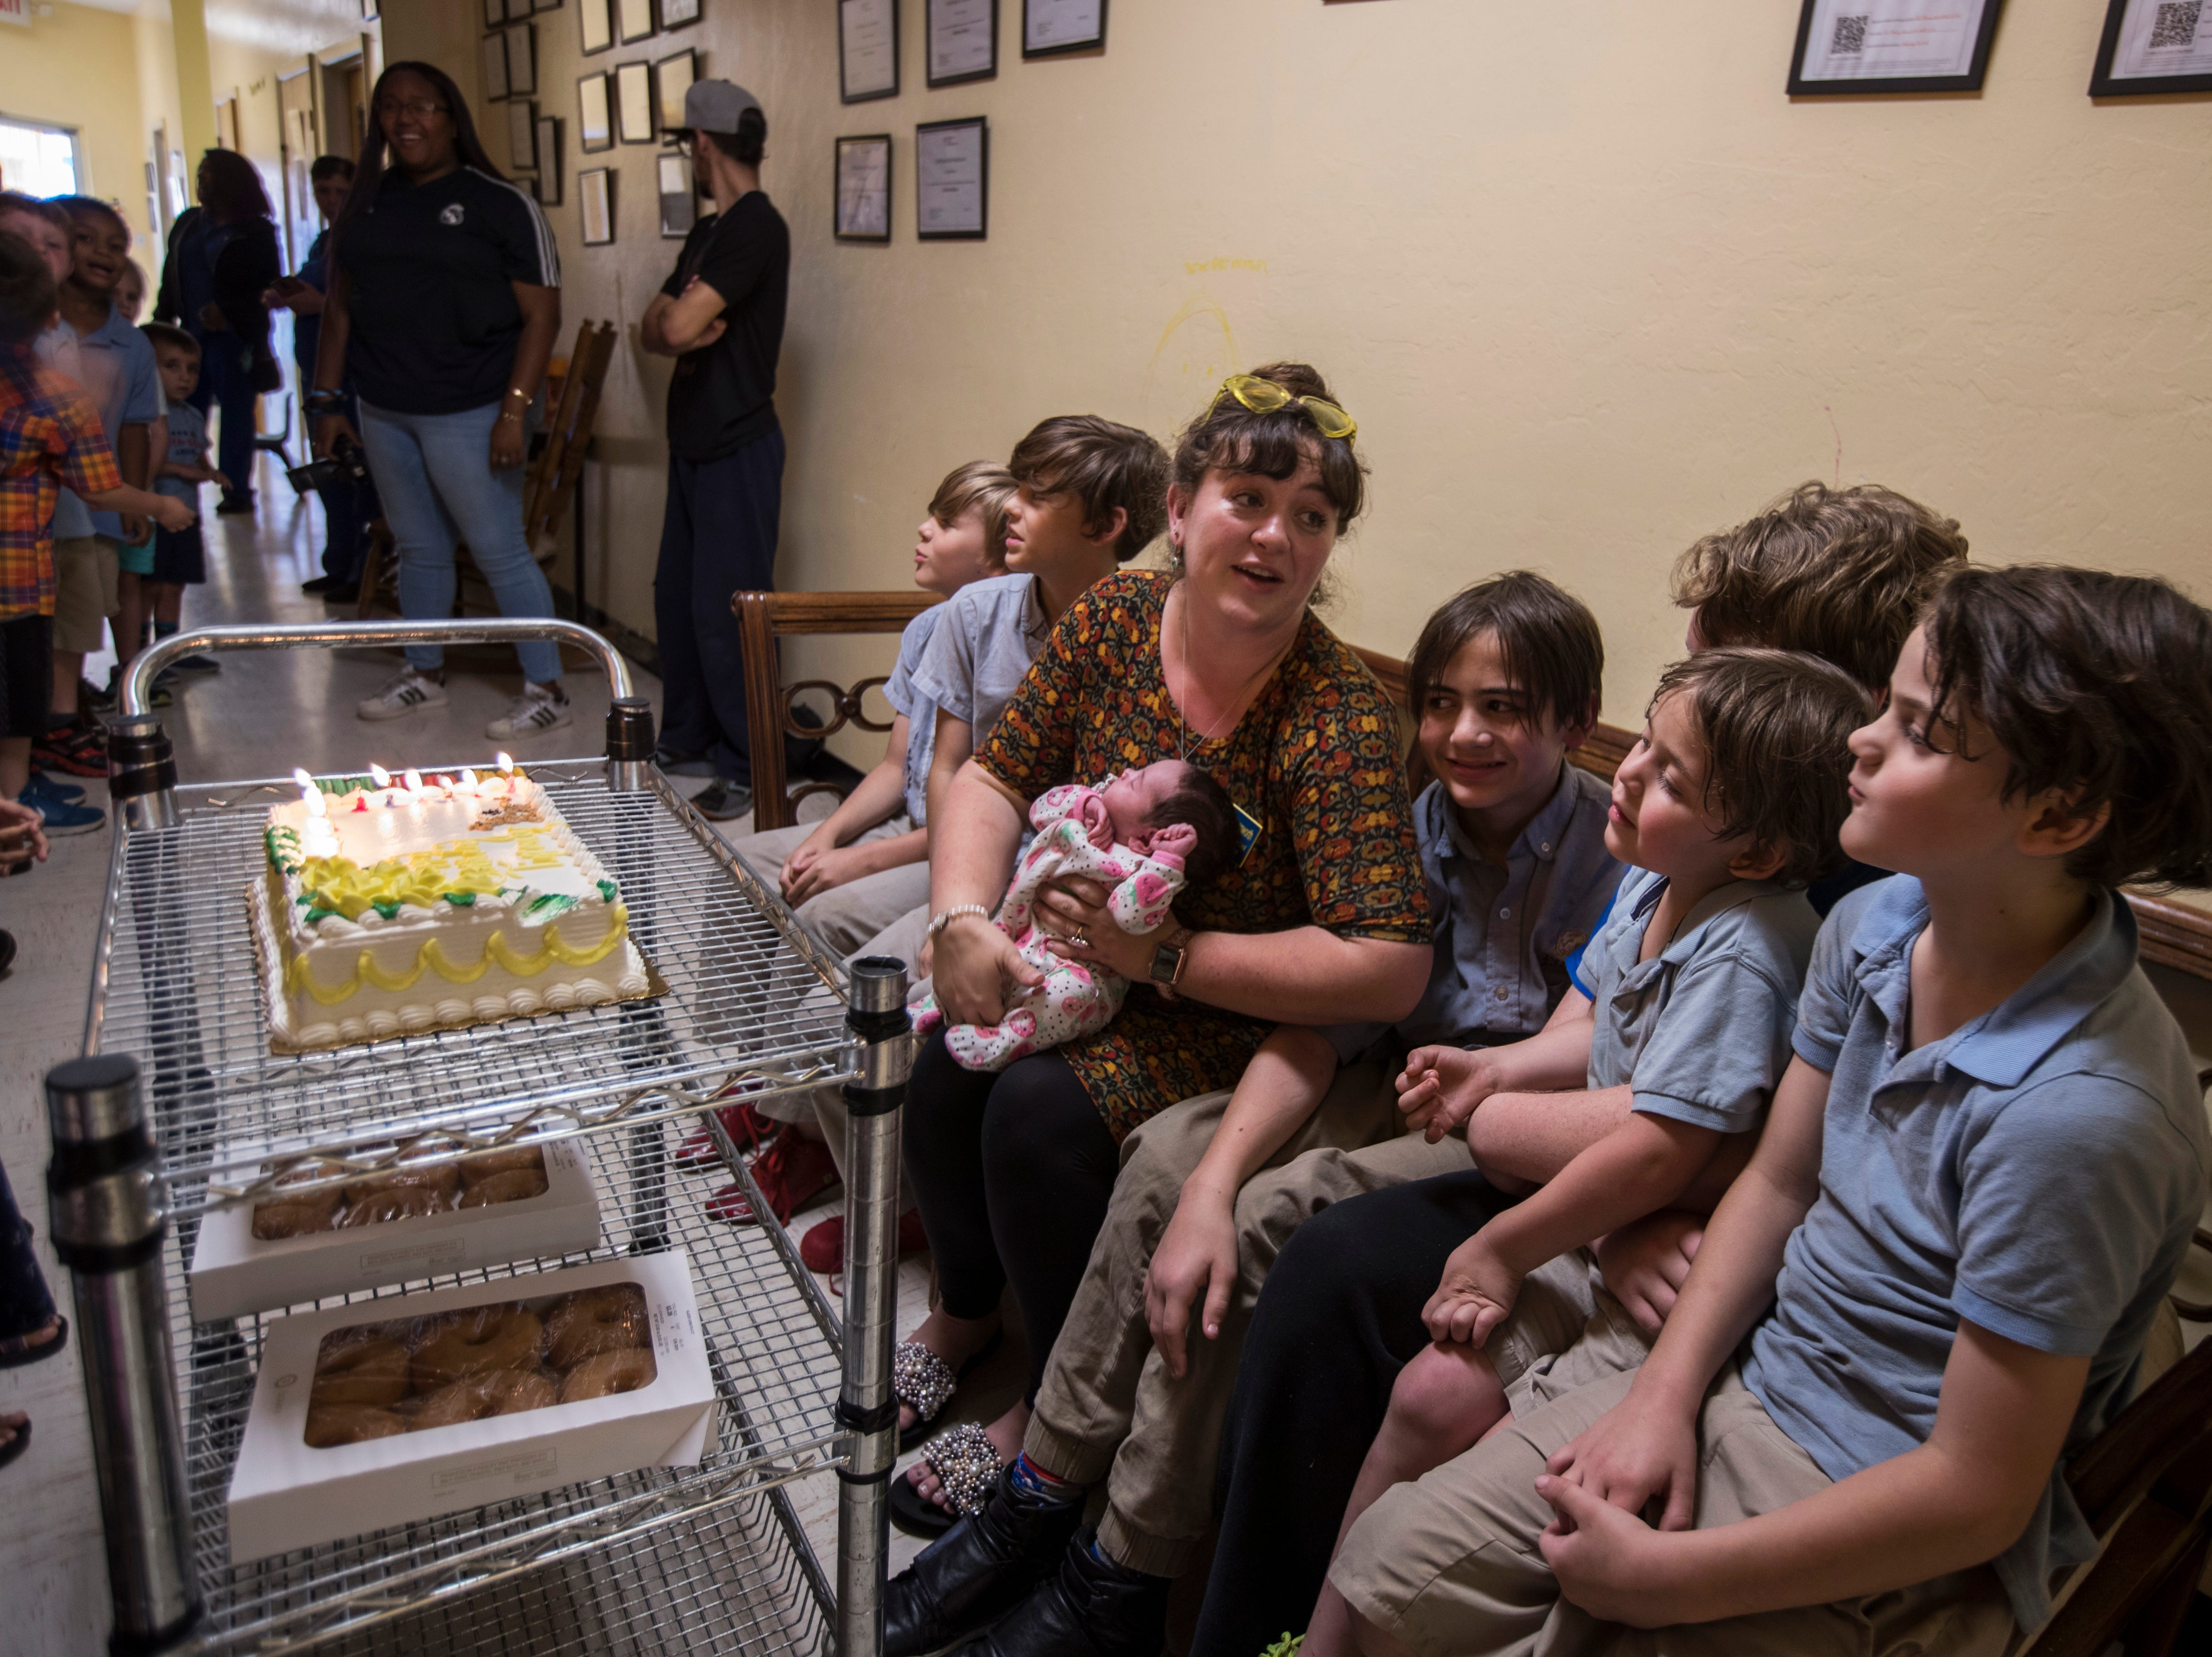 Tiffany Bannworth celebrates her birthday alongside her seven children Tuesday, May 7, 2019 at Nicaea Academy of Cape Coral.